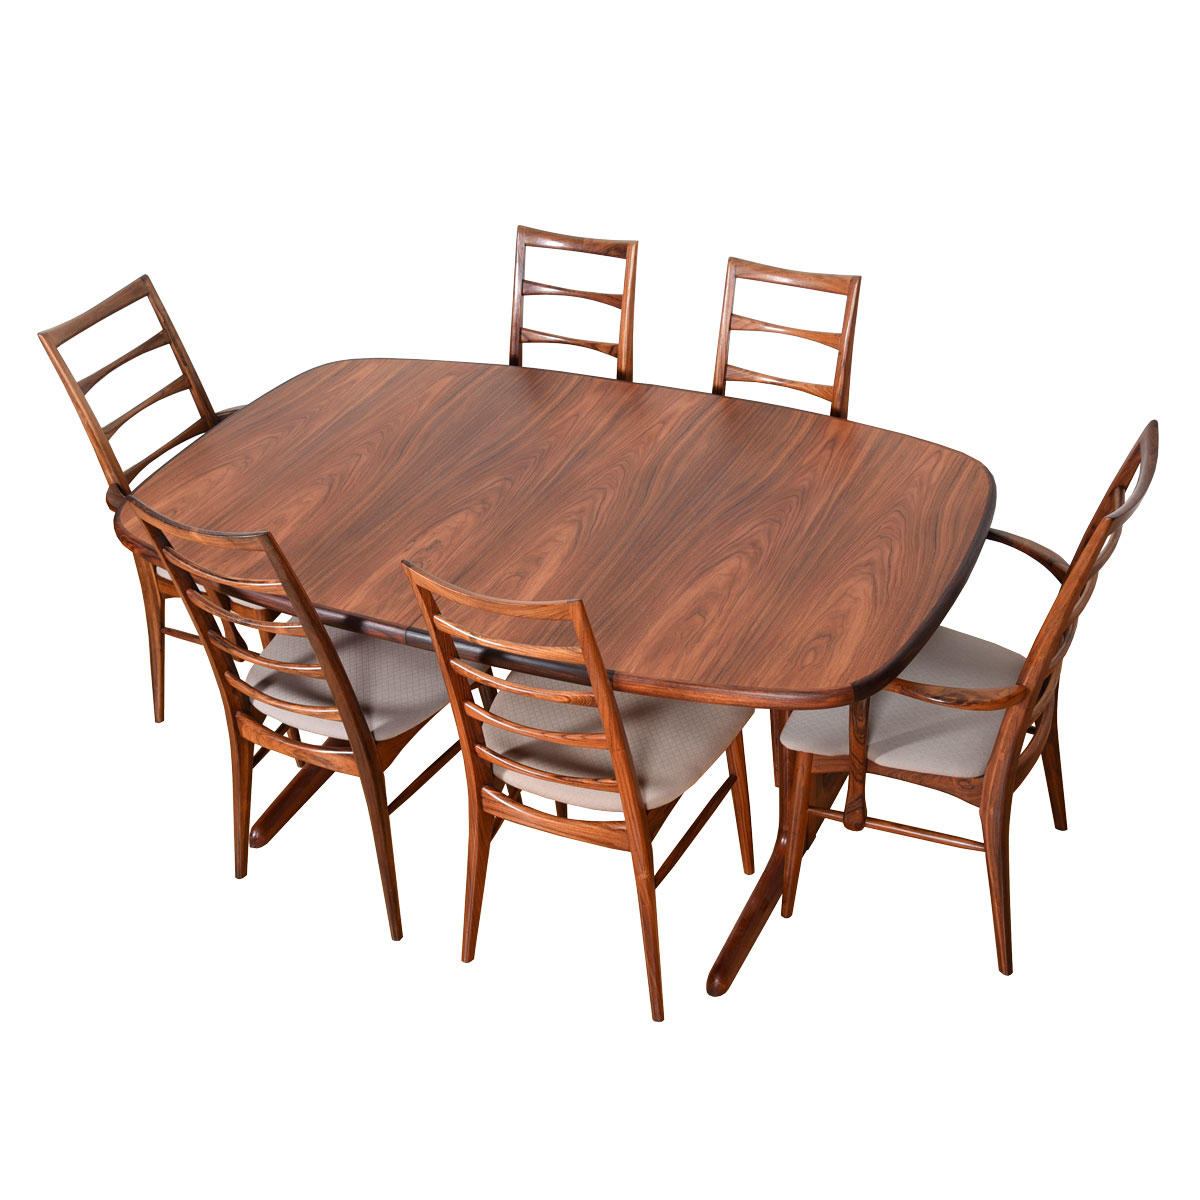 Danish Rosewood Expanding Rectangular Dining Table with Rounded Corners